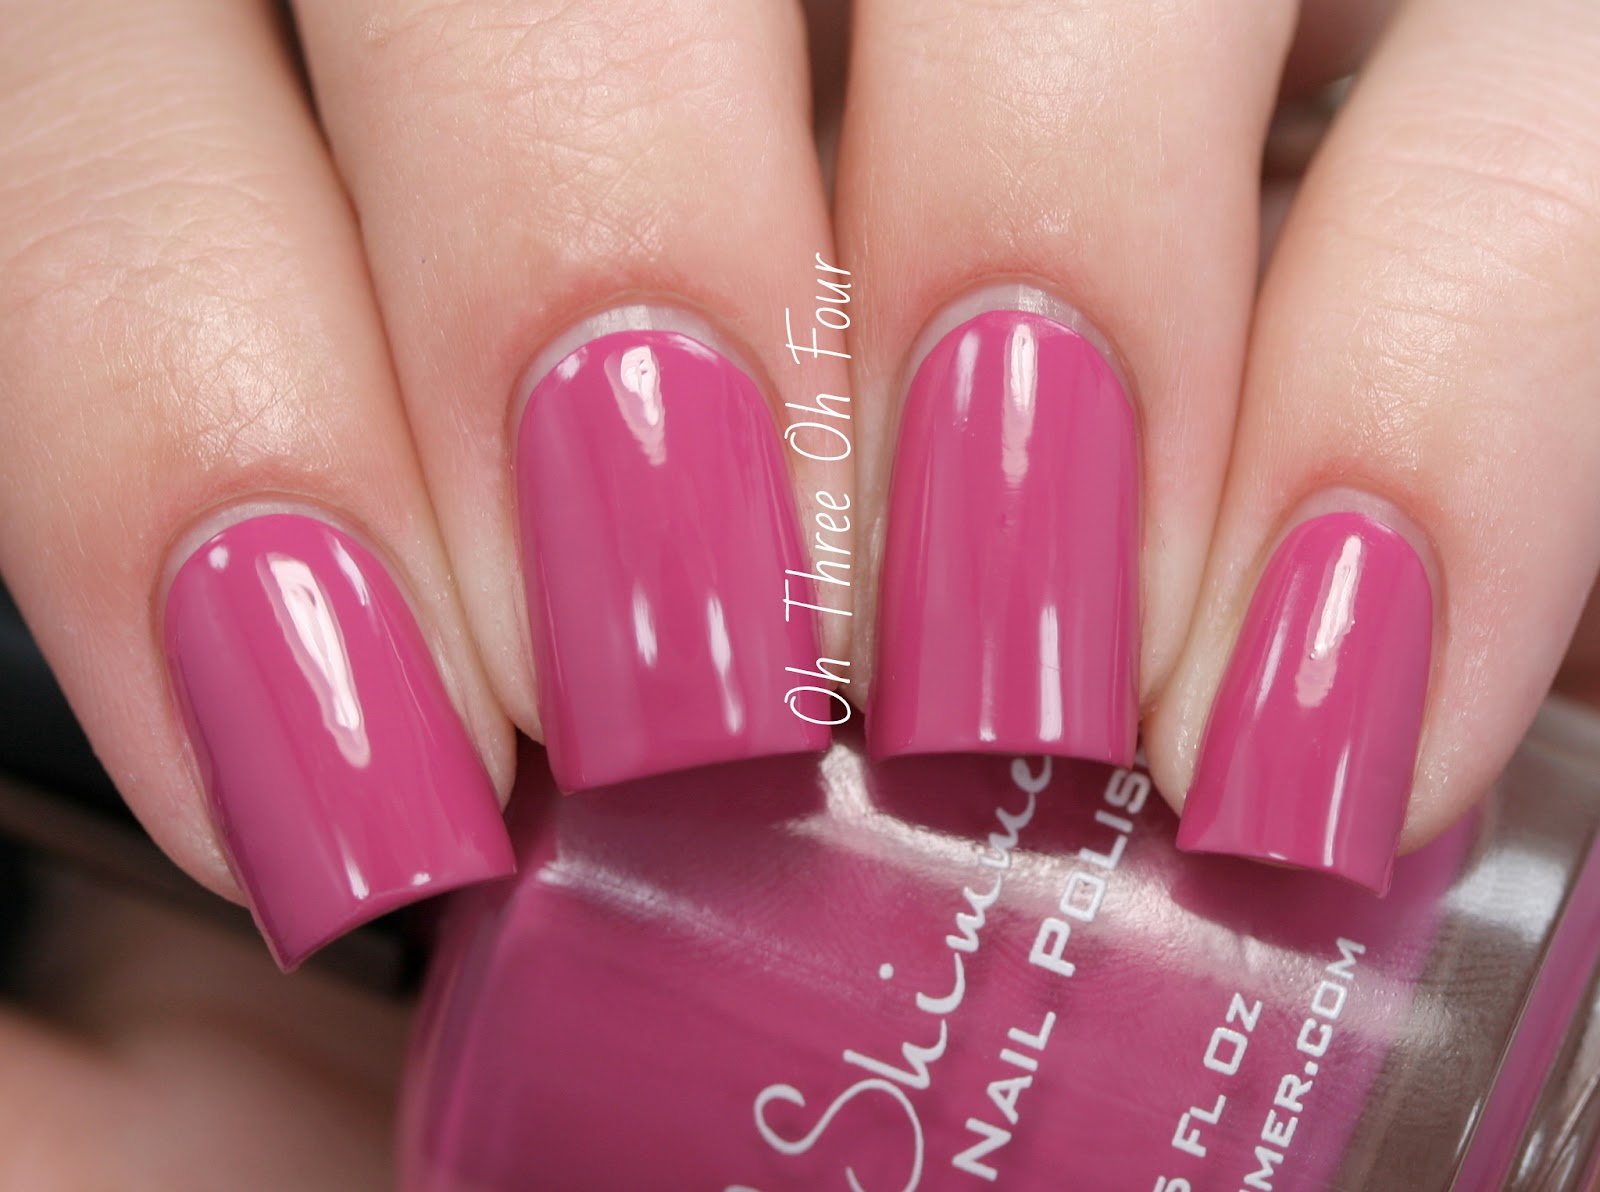 KBShimmer Life Rose On List swatch